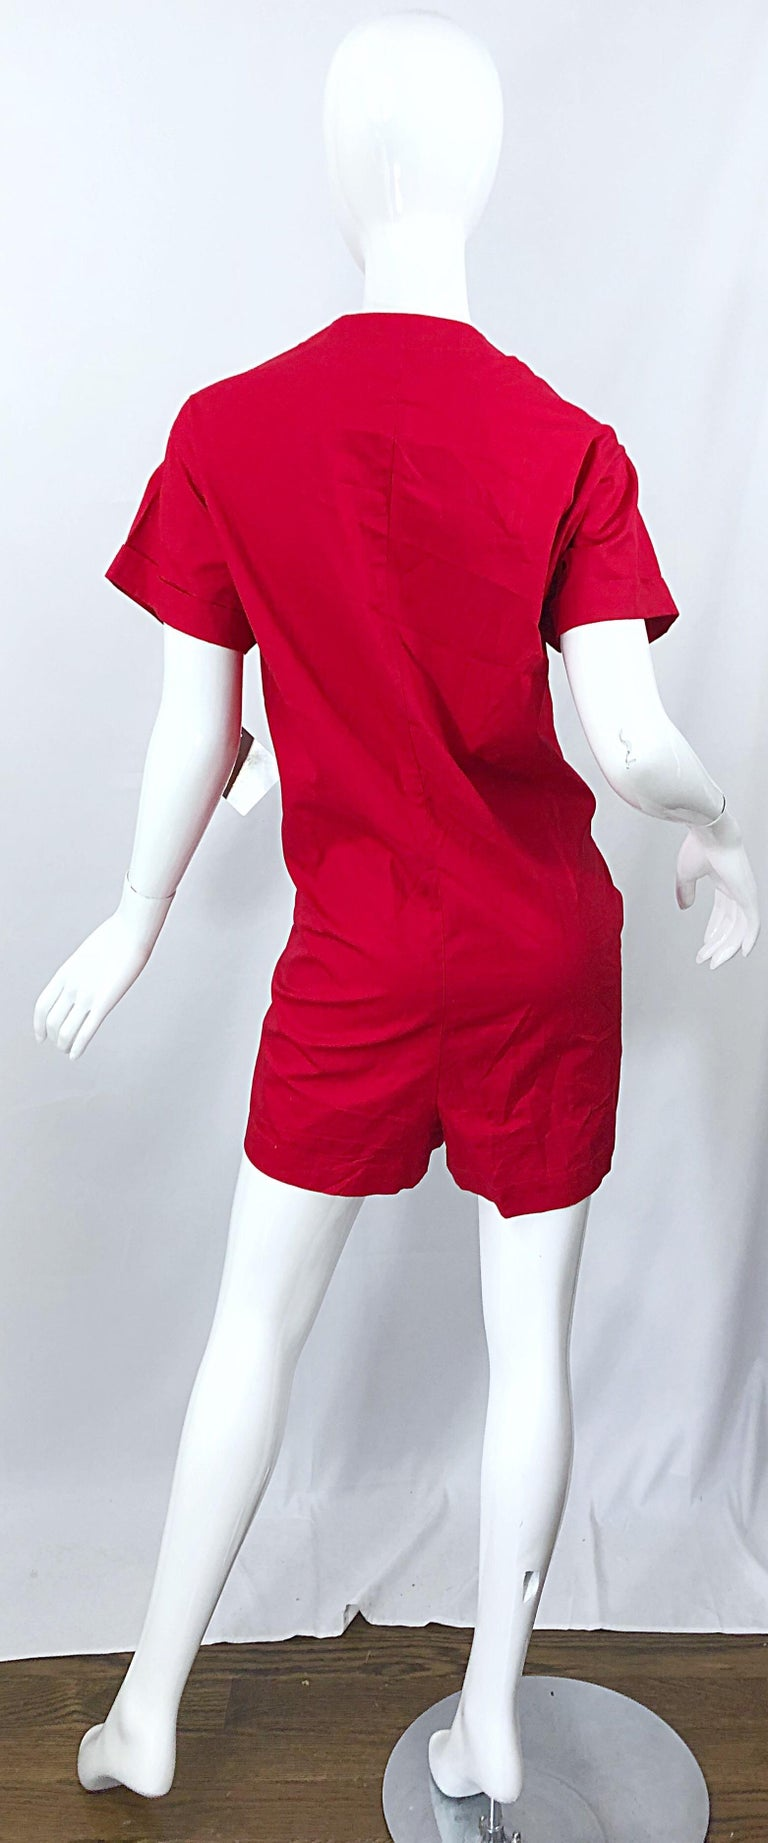 NWT Vintage Christian Dior Romper Size 14 Lipstick Red Cotton One Piece Jumpsuit For Sale 1